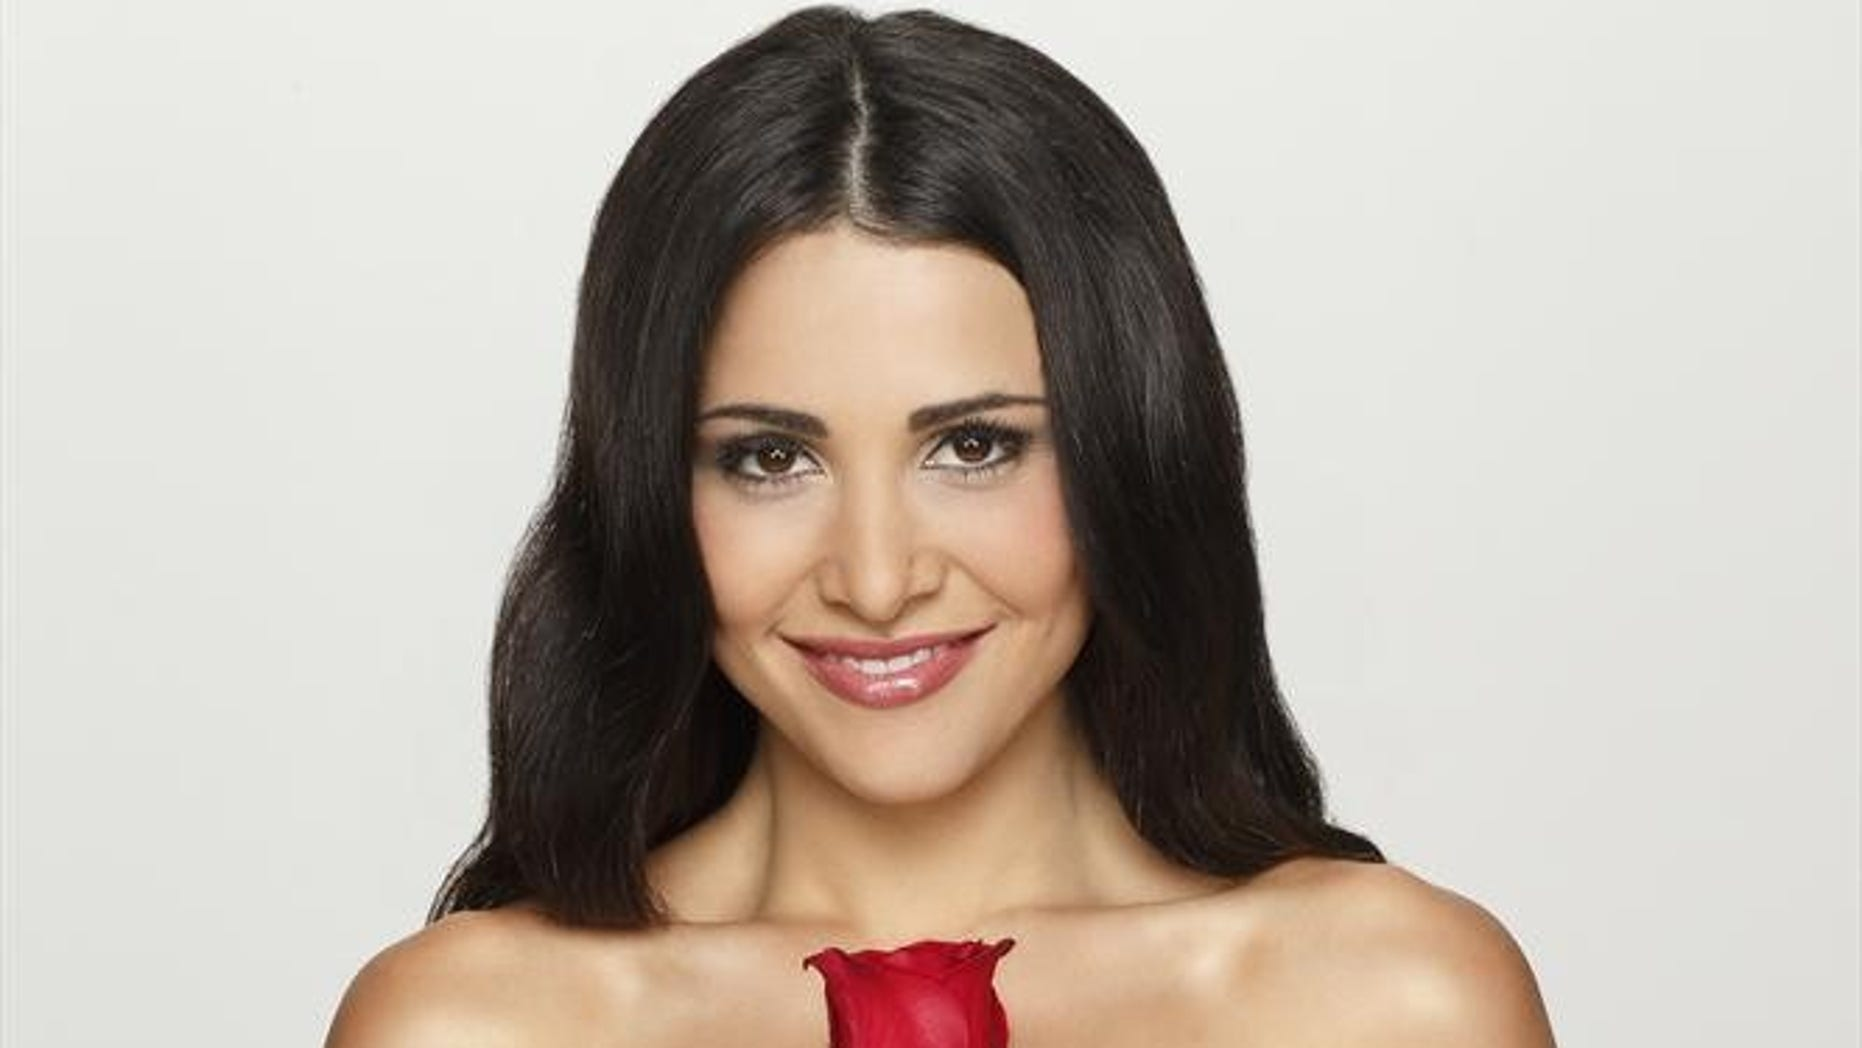 """Andi Dorfman, 26, will embark on her own journey to find love when she stars in the tenth edition of """"The Bachelorette,"""" which will premiere on May 19, 2014 on ABC."""